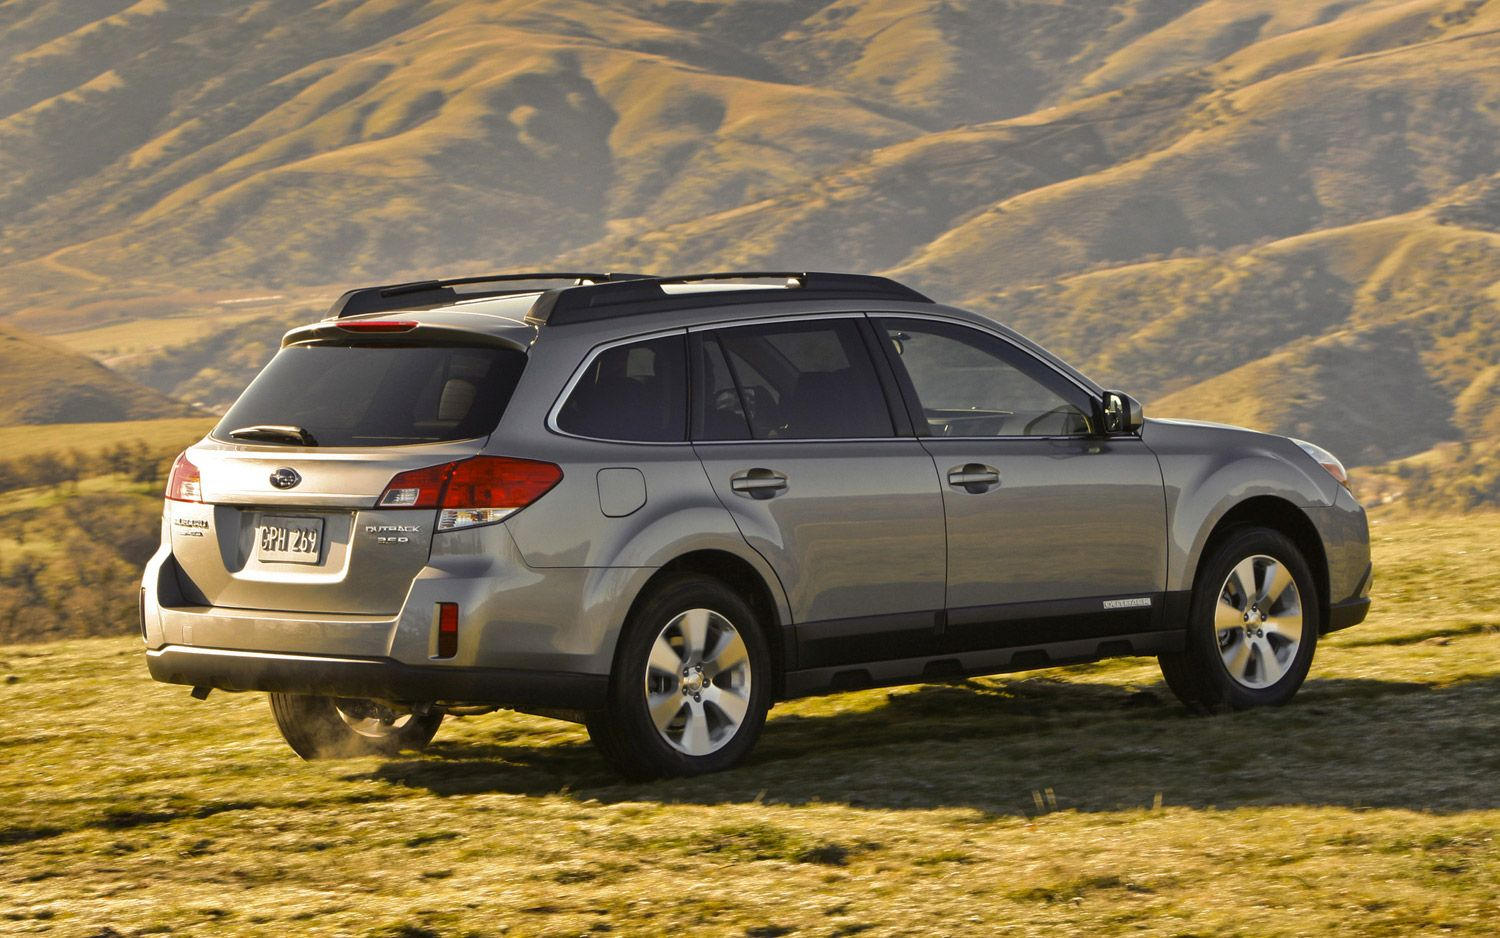 Subaru Outback 2013 rear view Bing Images Outback car